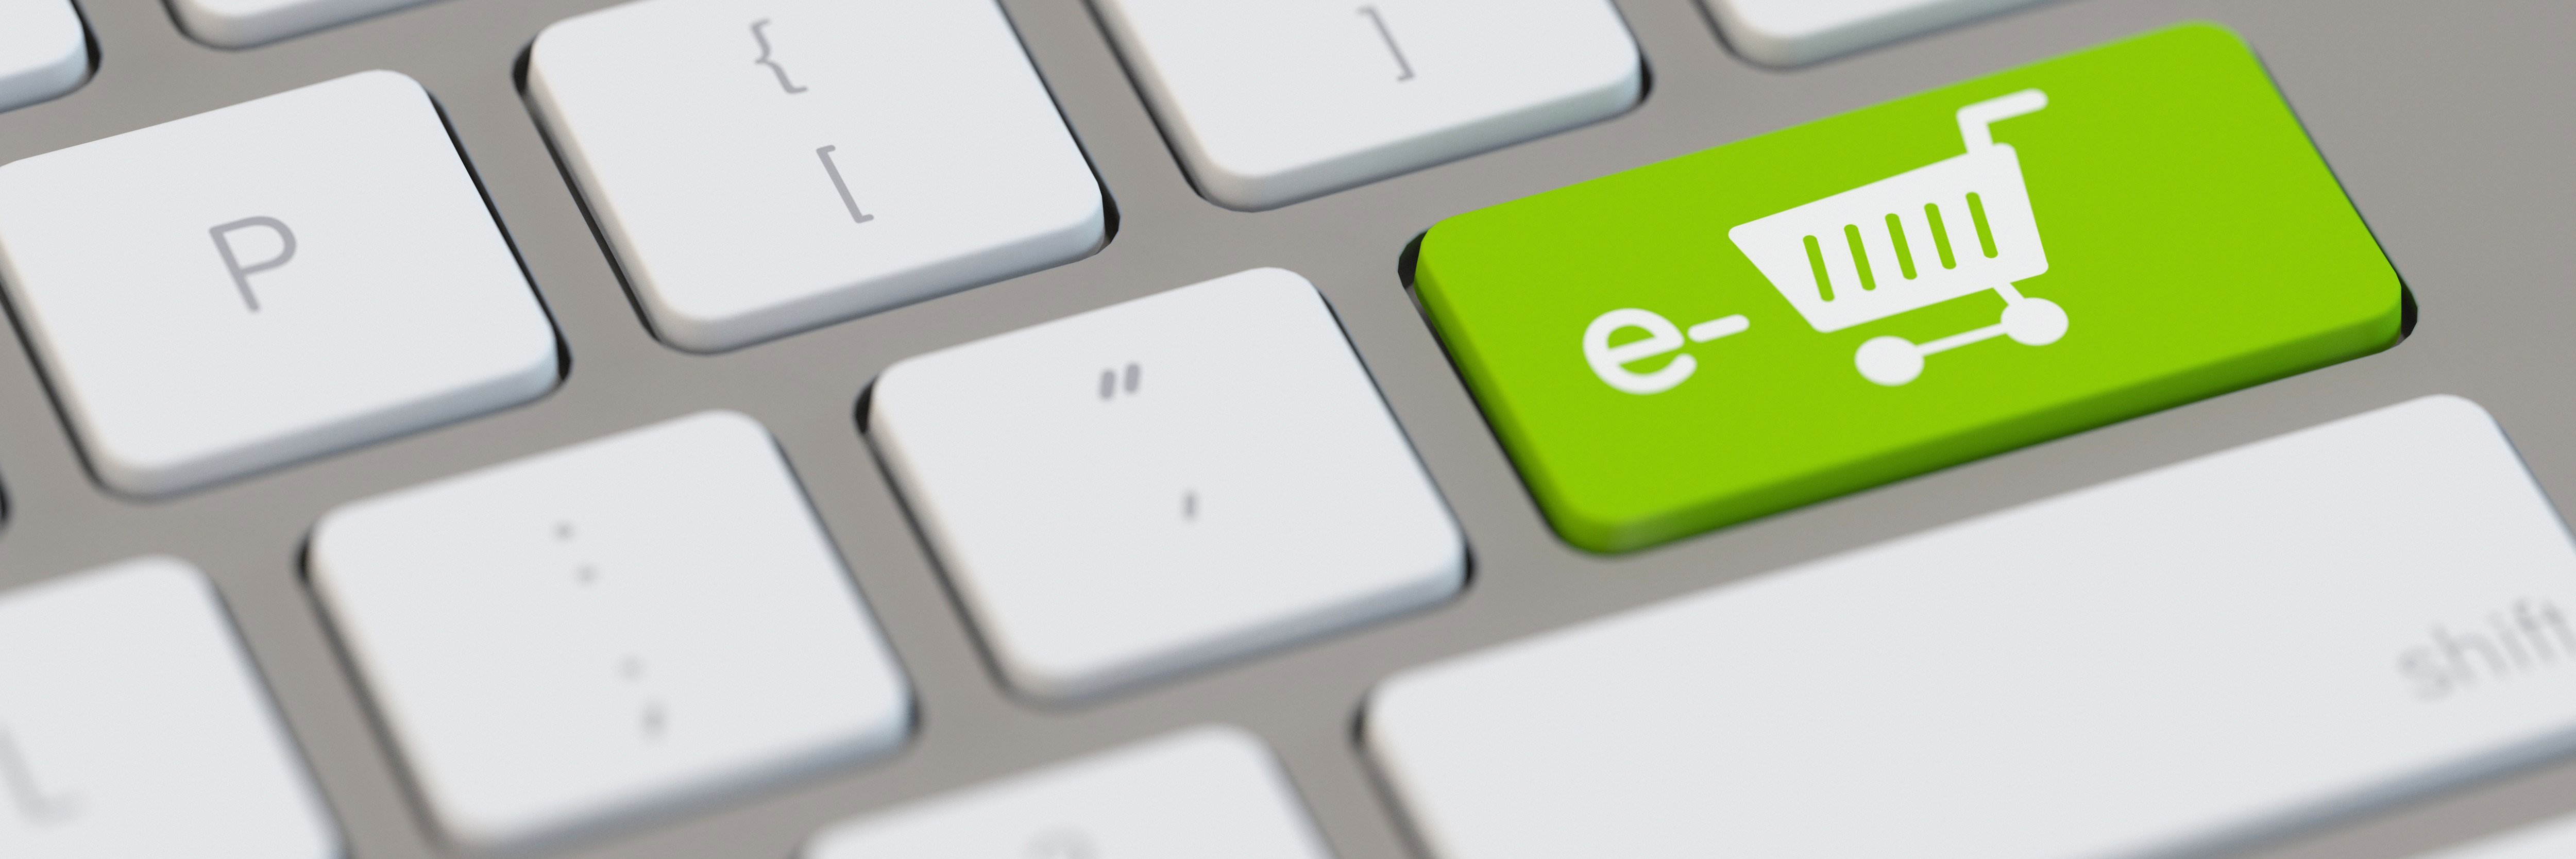 e-commerce-keyboard-fotolia.jpg